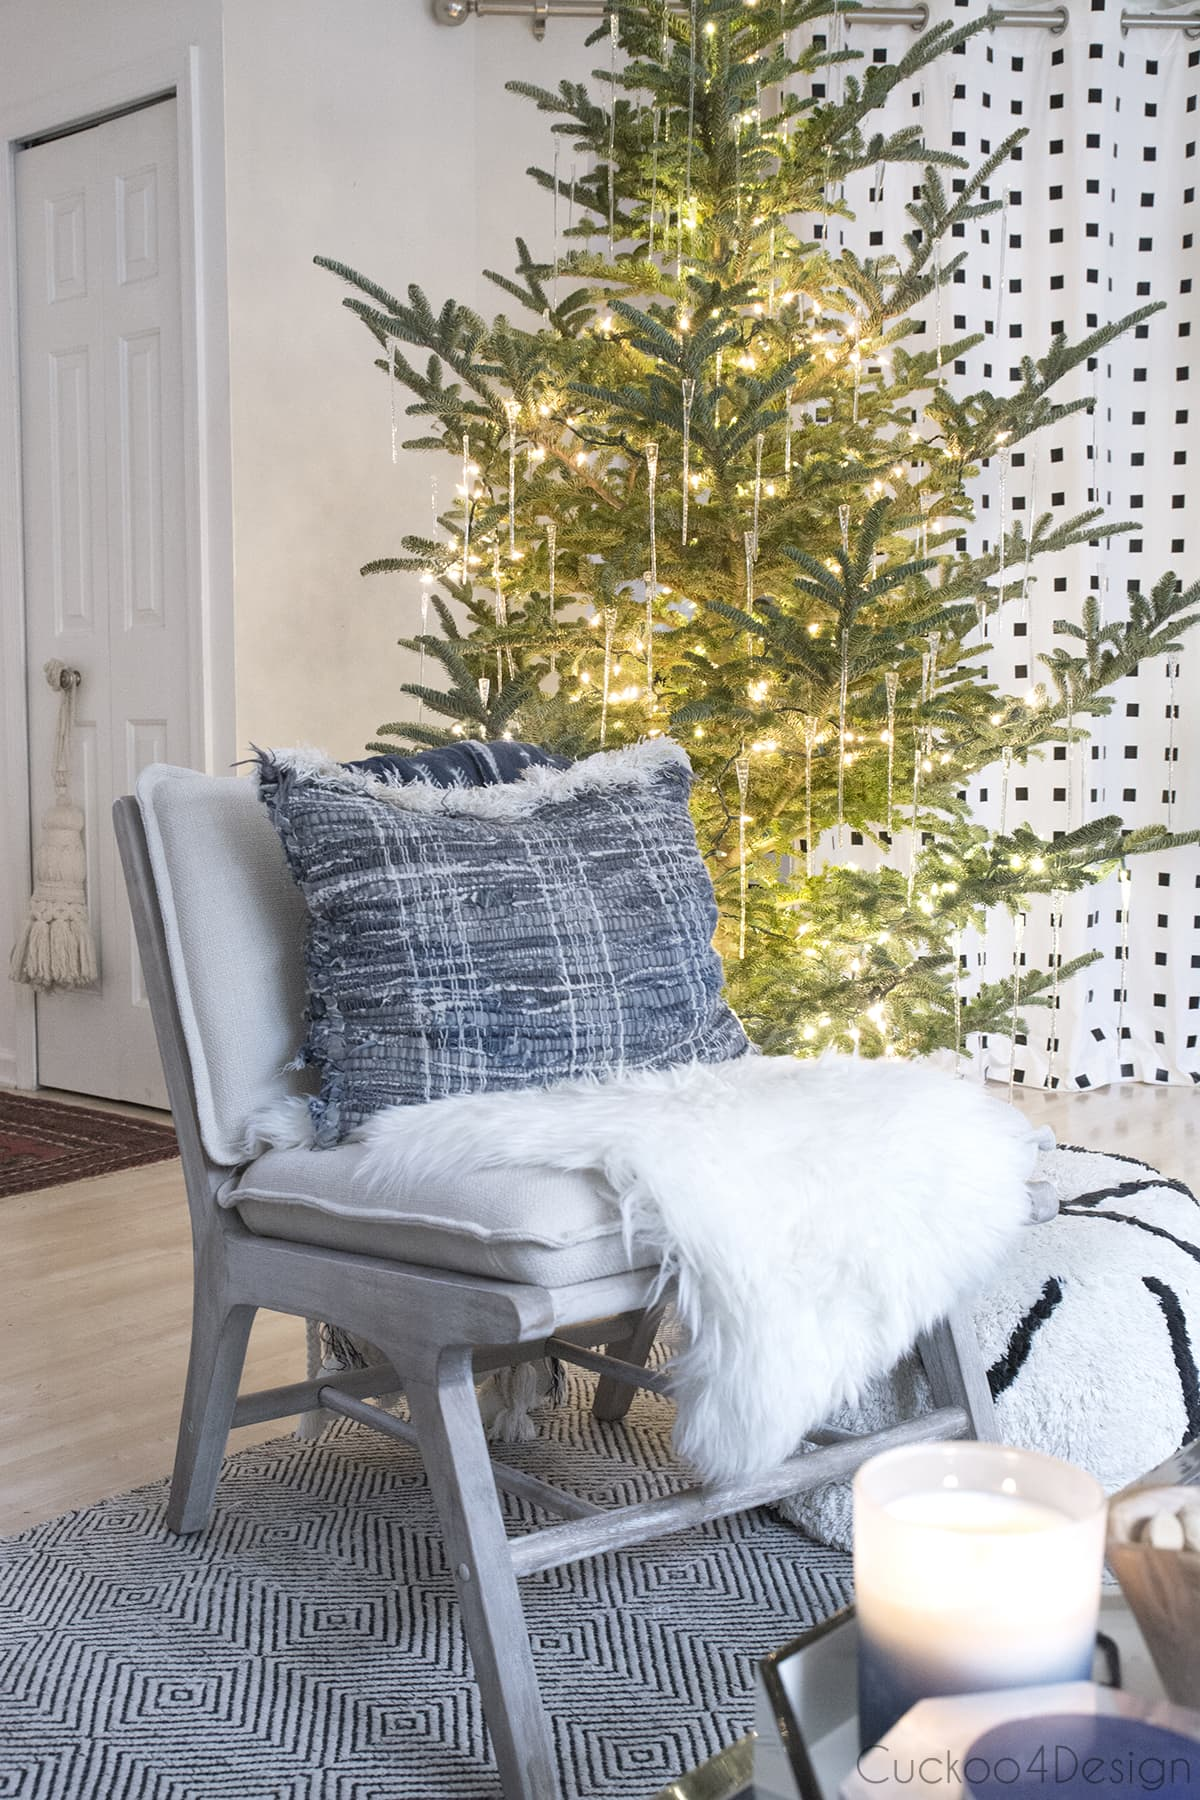 simple and natural Christmas Decorations for tree with glass icicles